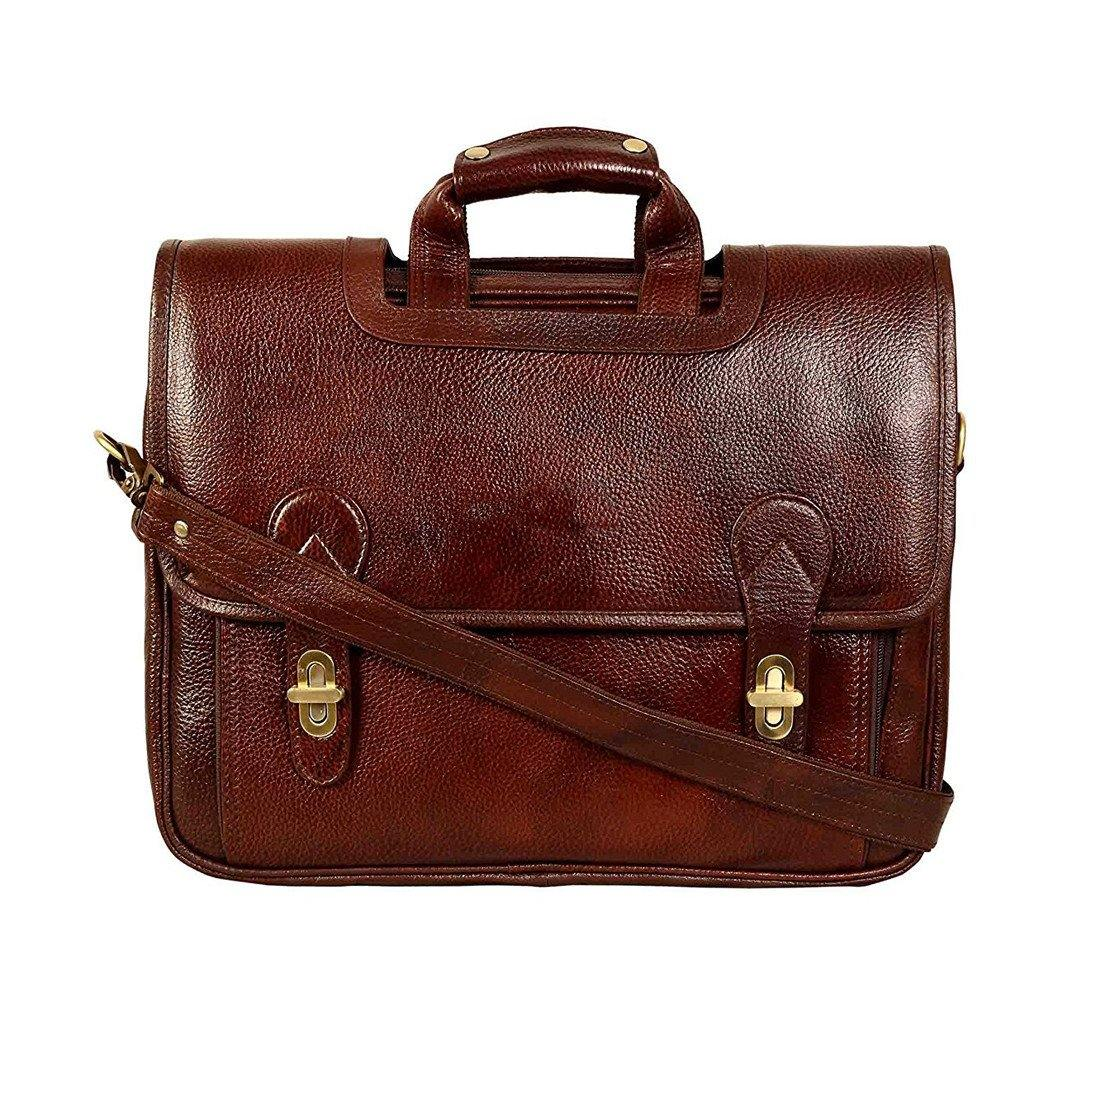 Leather World Genuine Leather Laptop Portfolio Bag 16 inch Brown 7 Liter Laptop / Tablets / Macbook - #OB1068